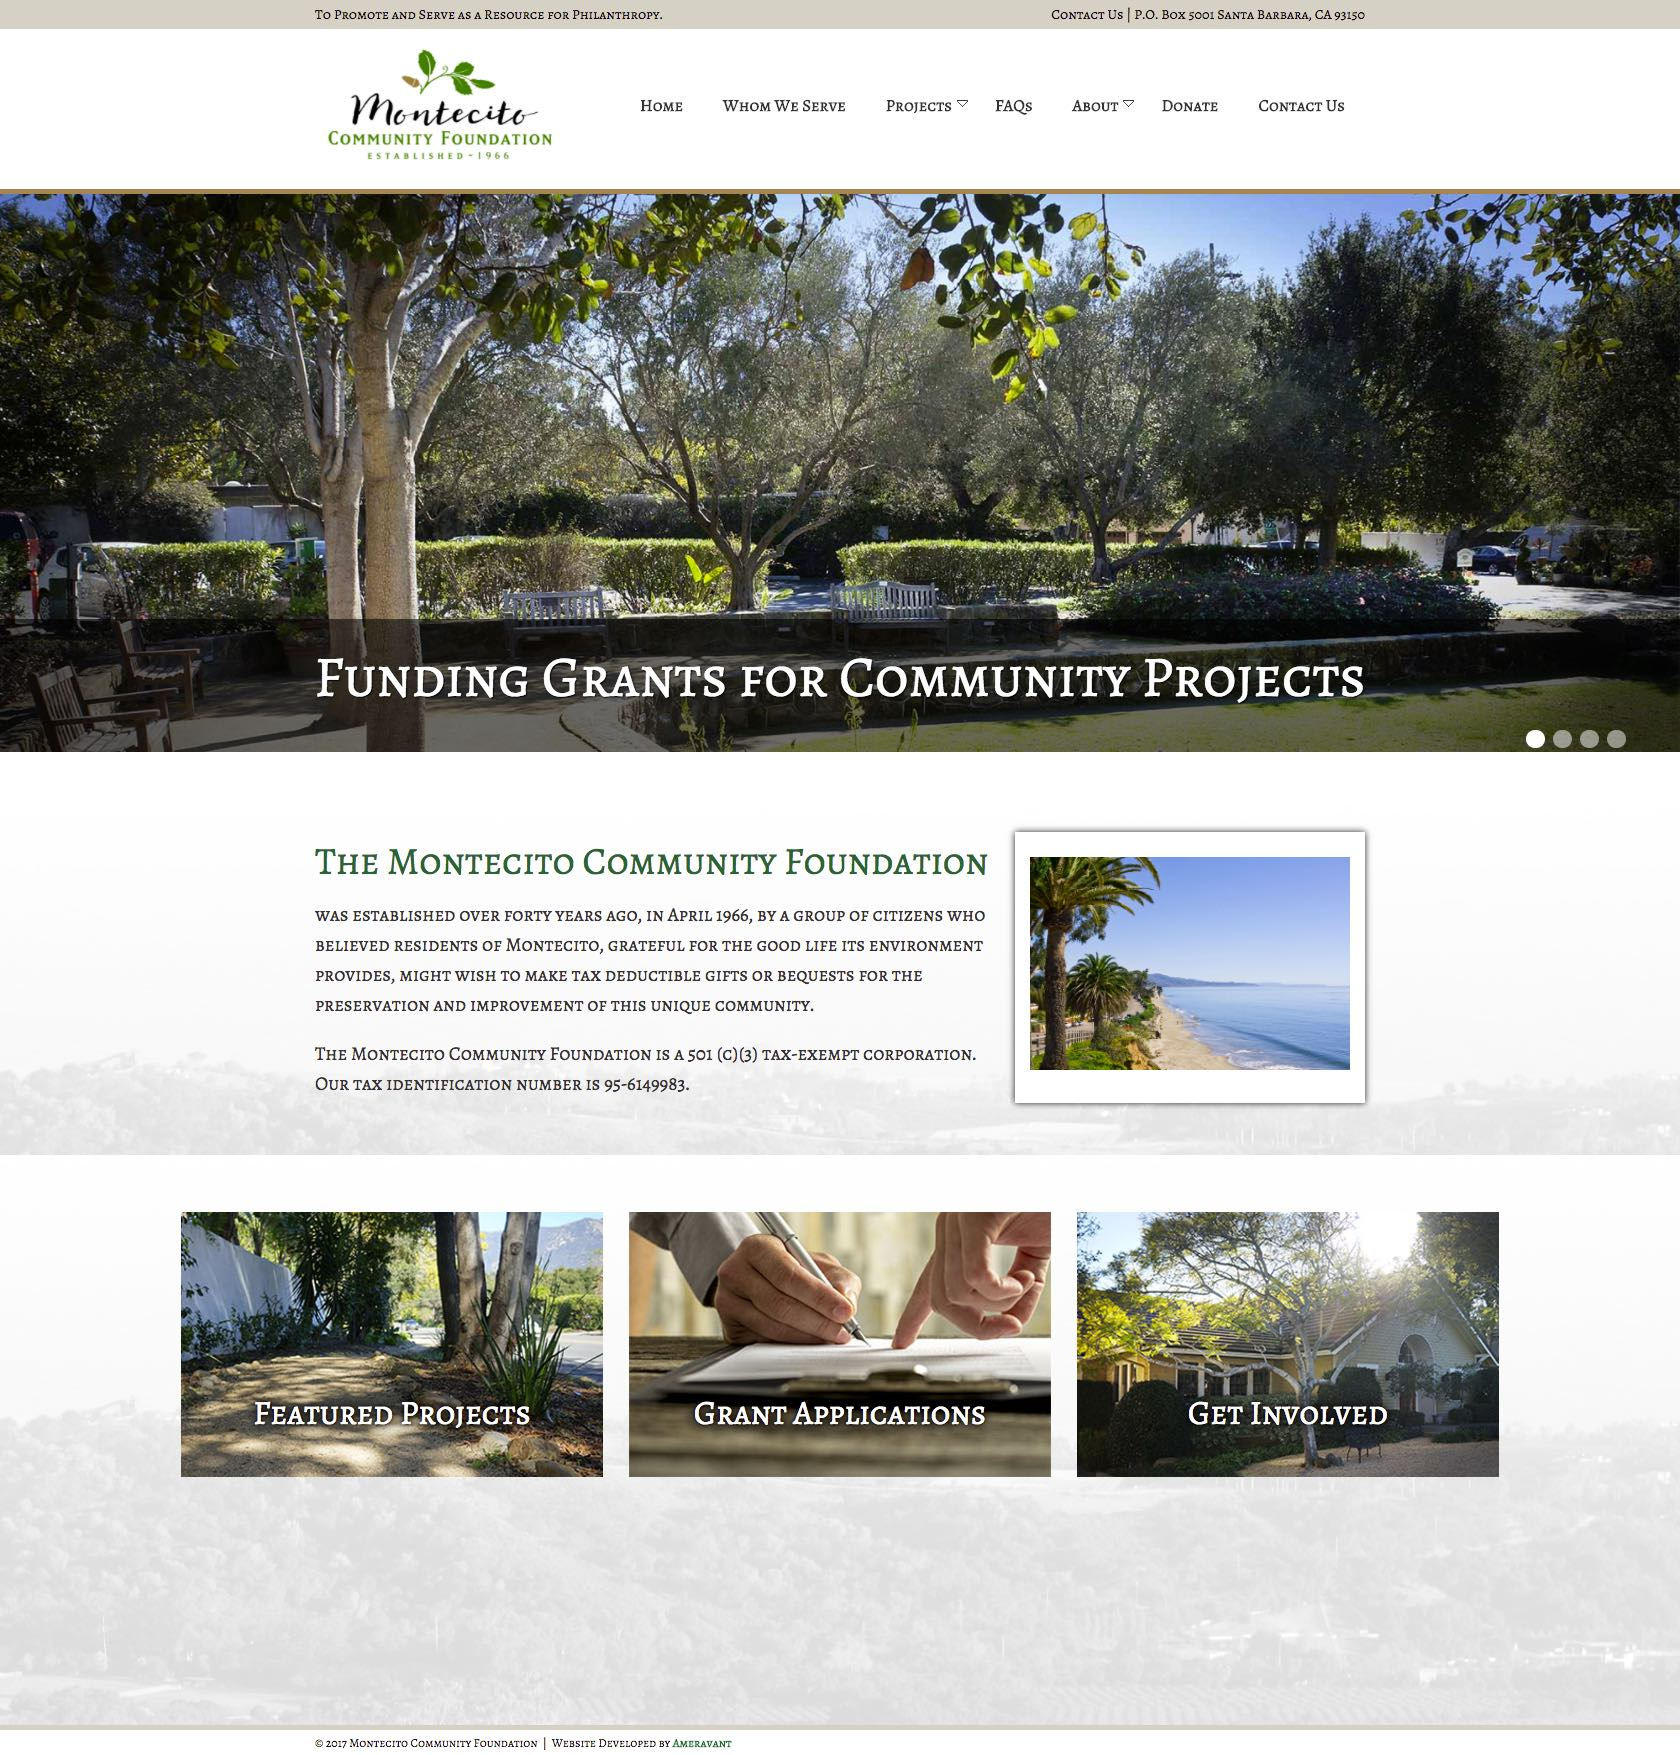 The Montecito Community Foundation Home